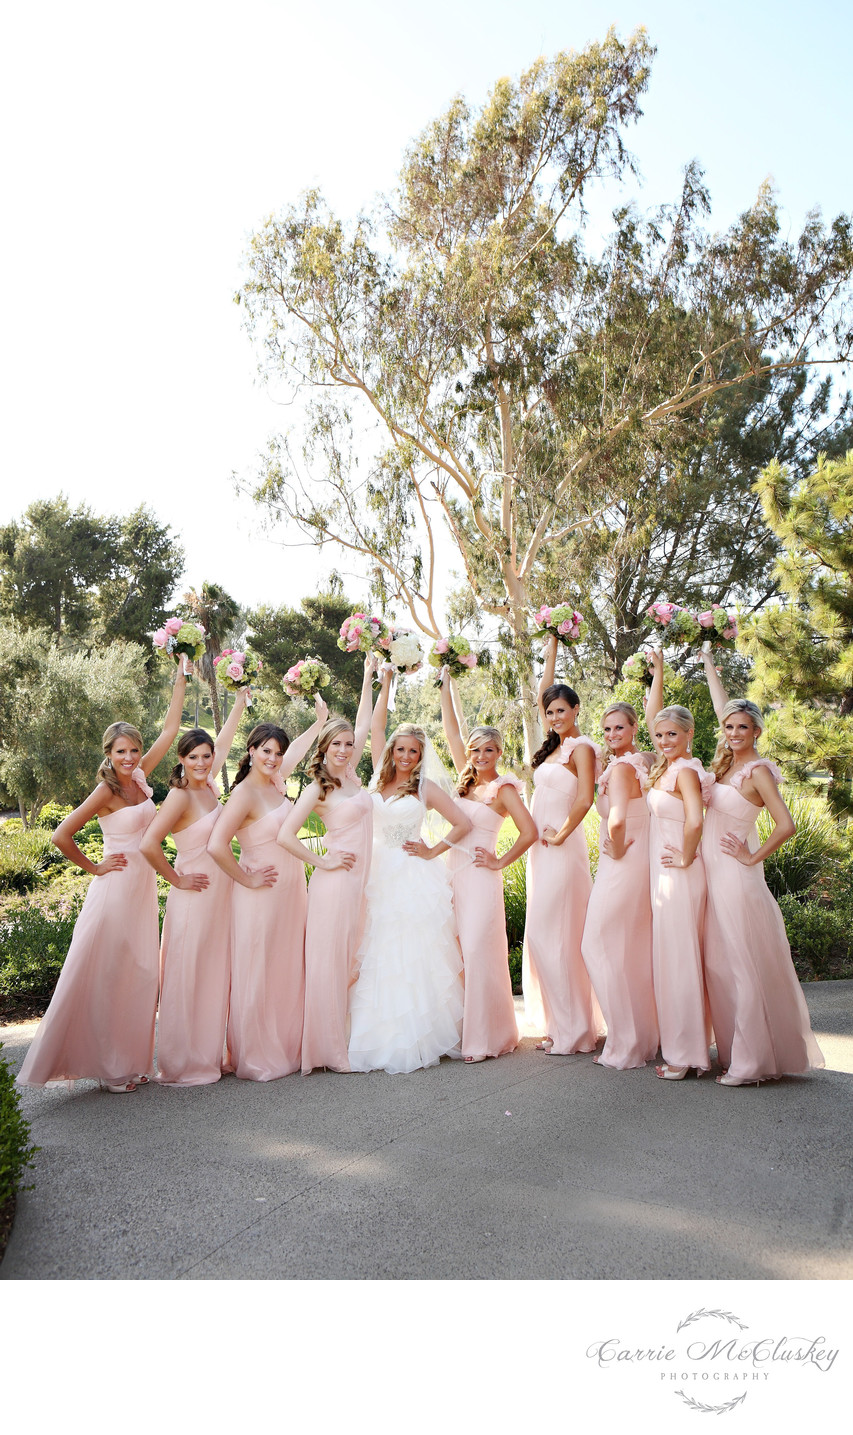 Best Photographer Bridesmaids at Rancho Bernardo Inn